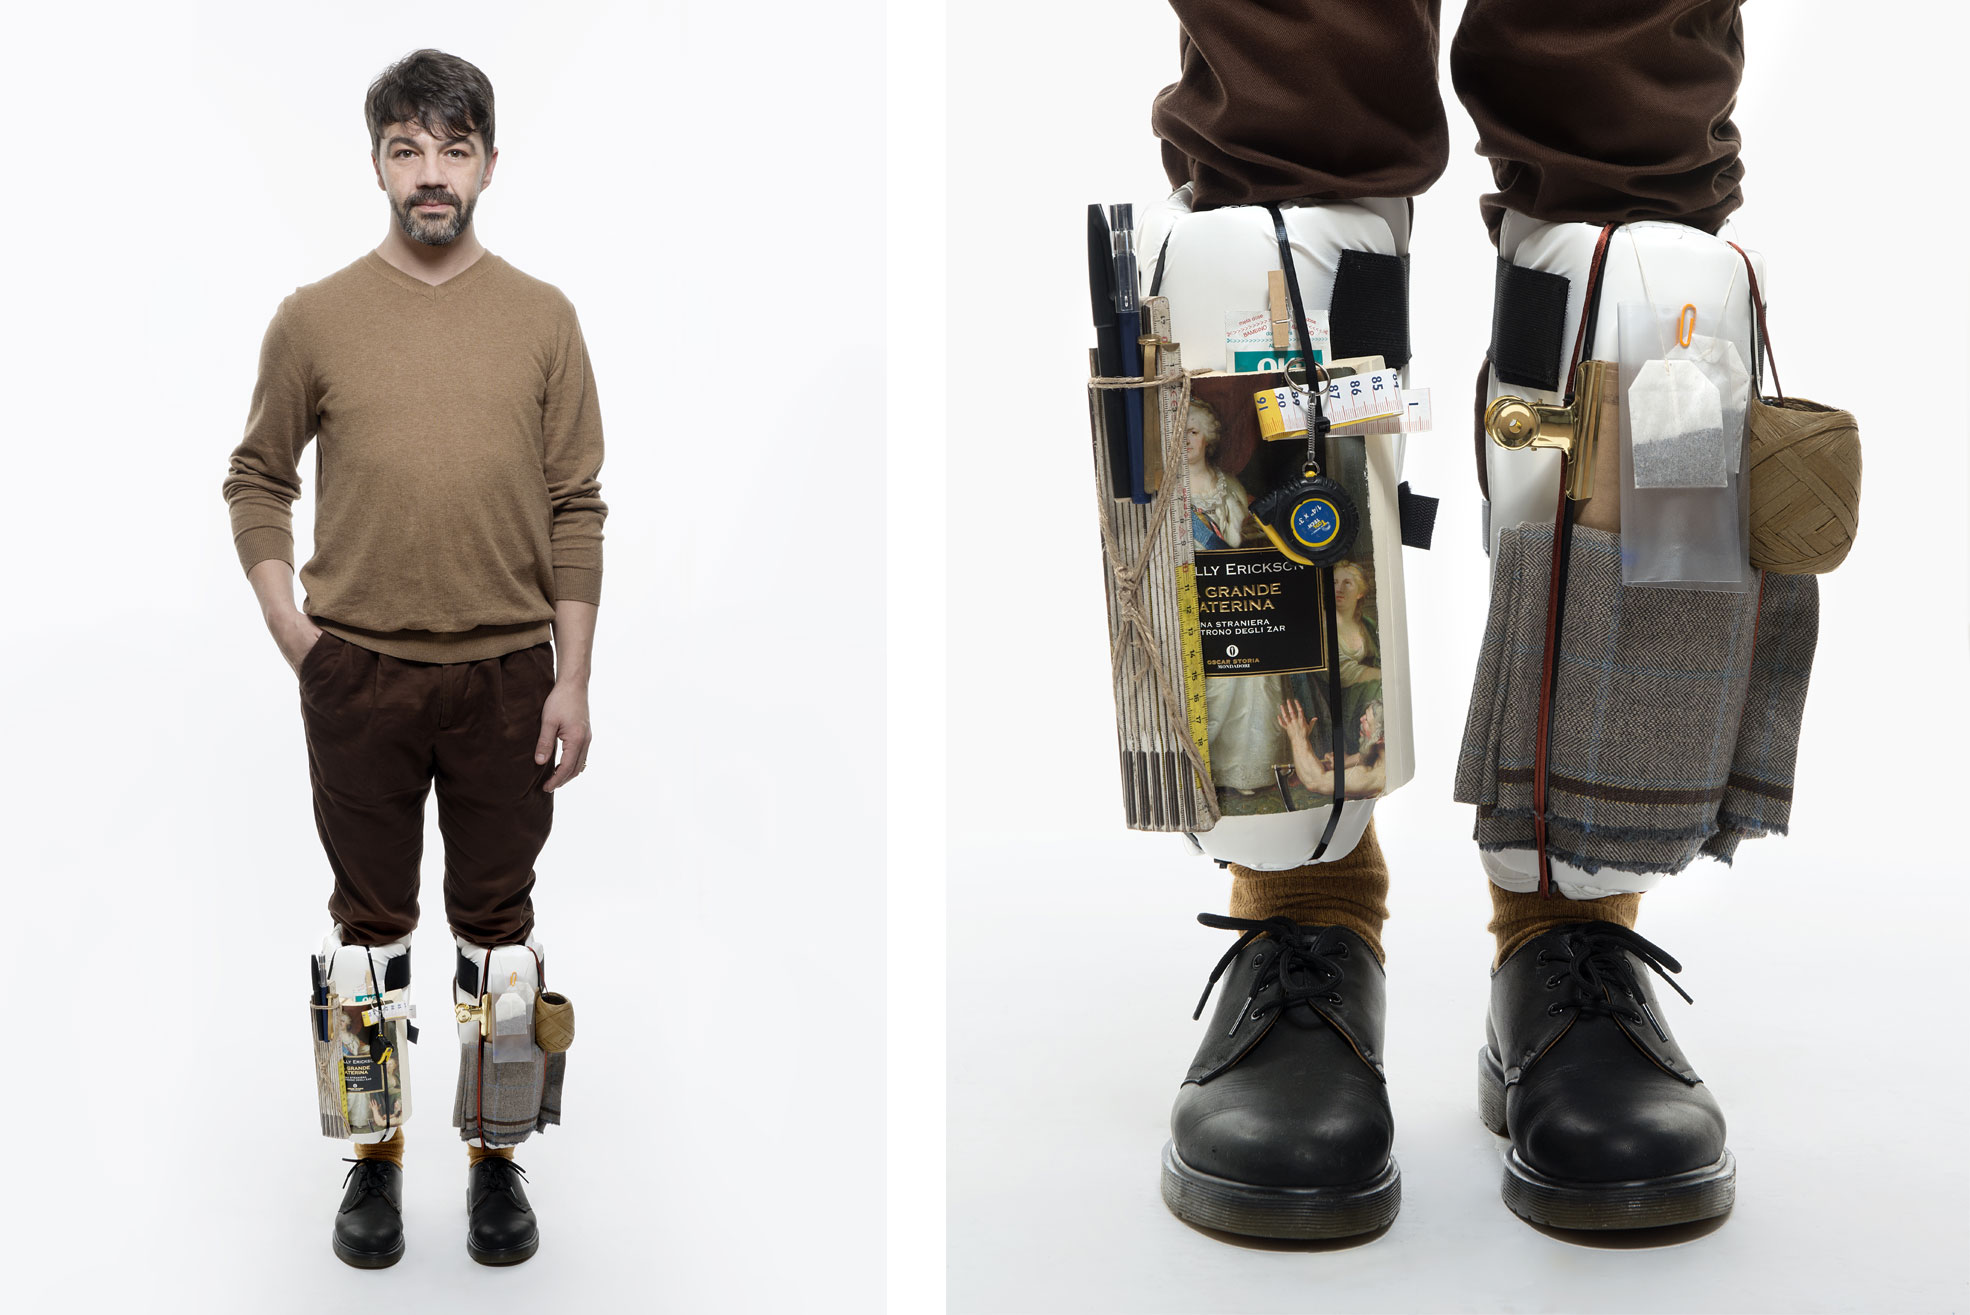 n with objects on his legs, the picture is part of Wearable Homes a design project by Denise Bonapace